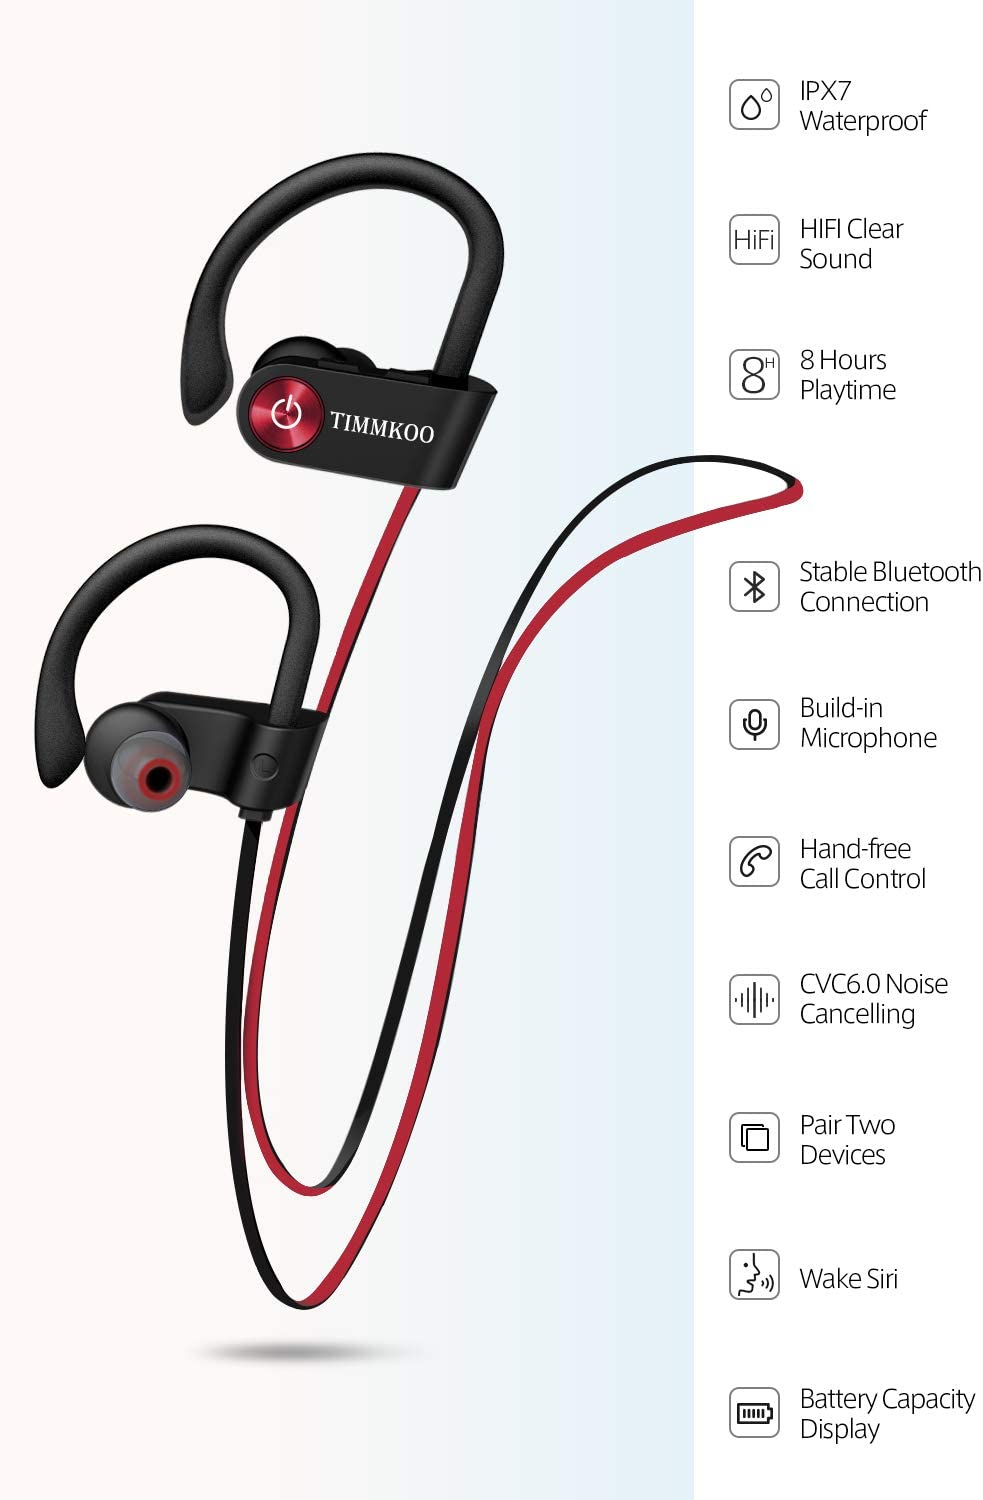 Bluetooth Headphones IPX7 Waterproof, Wireless Running Earbuds Bluetooth 4.1, HiFi Bass Stereo Sweatproof Earphones w Mic, Noise Cancelling Headset for Workout, Sports, Gym, 8 Hours Play Time